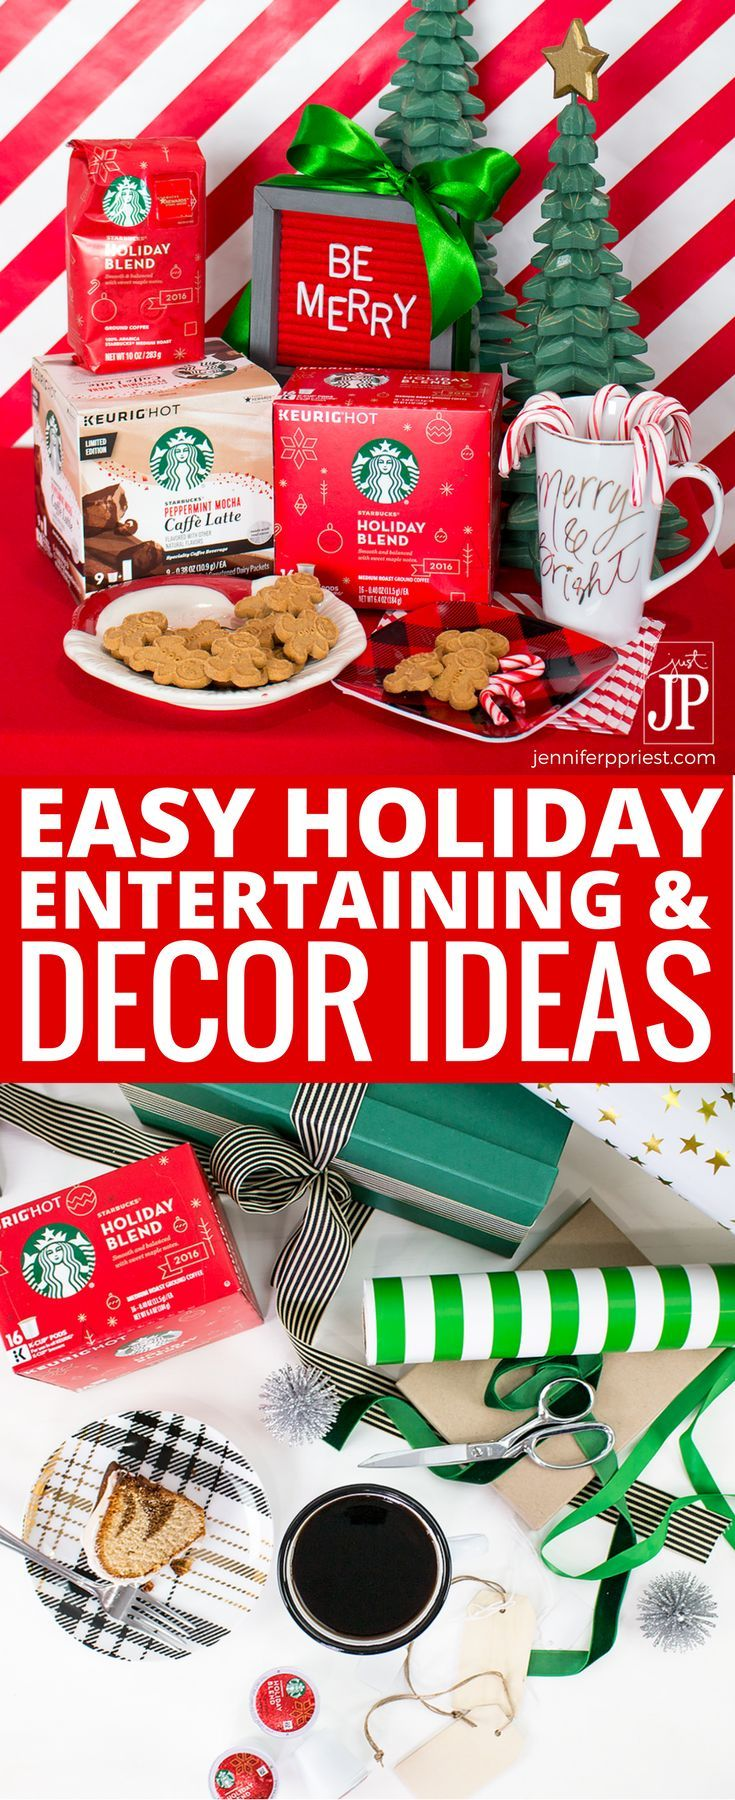 [AD] #CoffeeAtHome #JoyCheerStarbucks 5 Easy Holiday Decorating and Christmas entertaining ideas with Starbucks Holiday Blend K-Cup pods and Starbucks Peppermint Mocha Latte Caffe K-Cup pods at Walmart